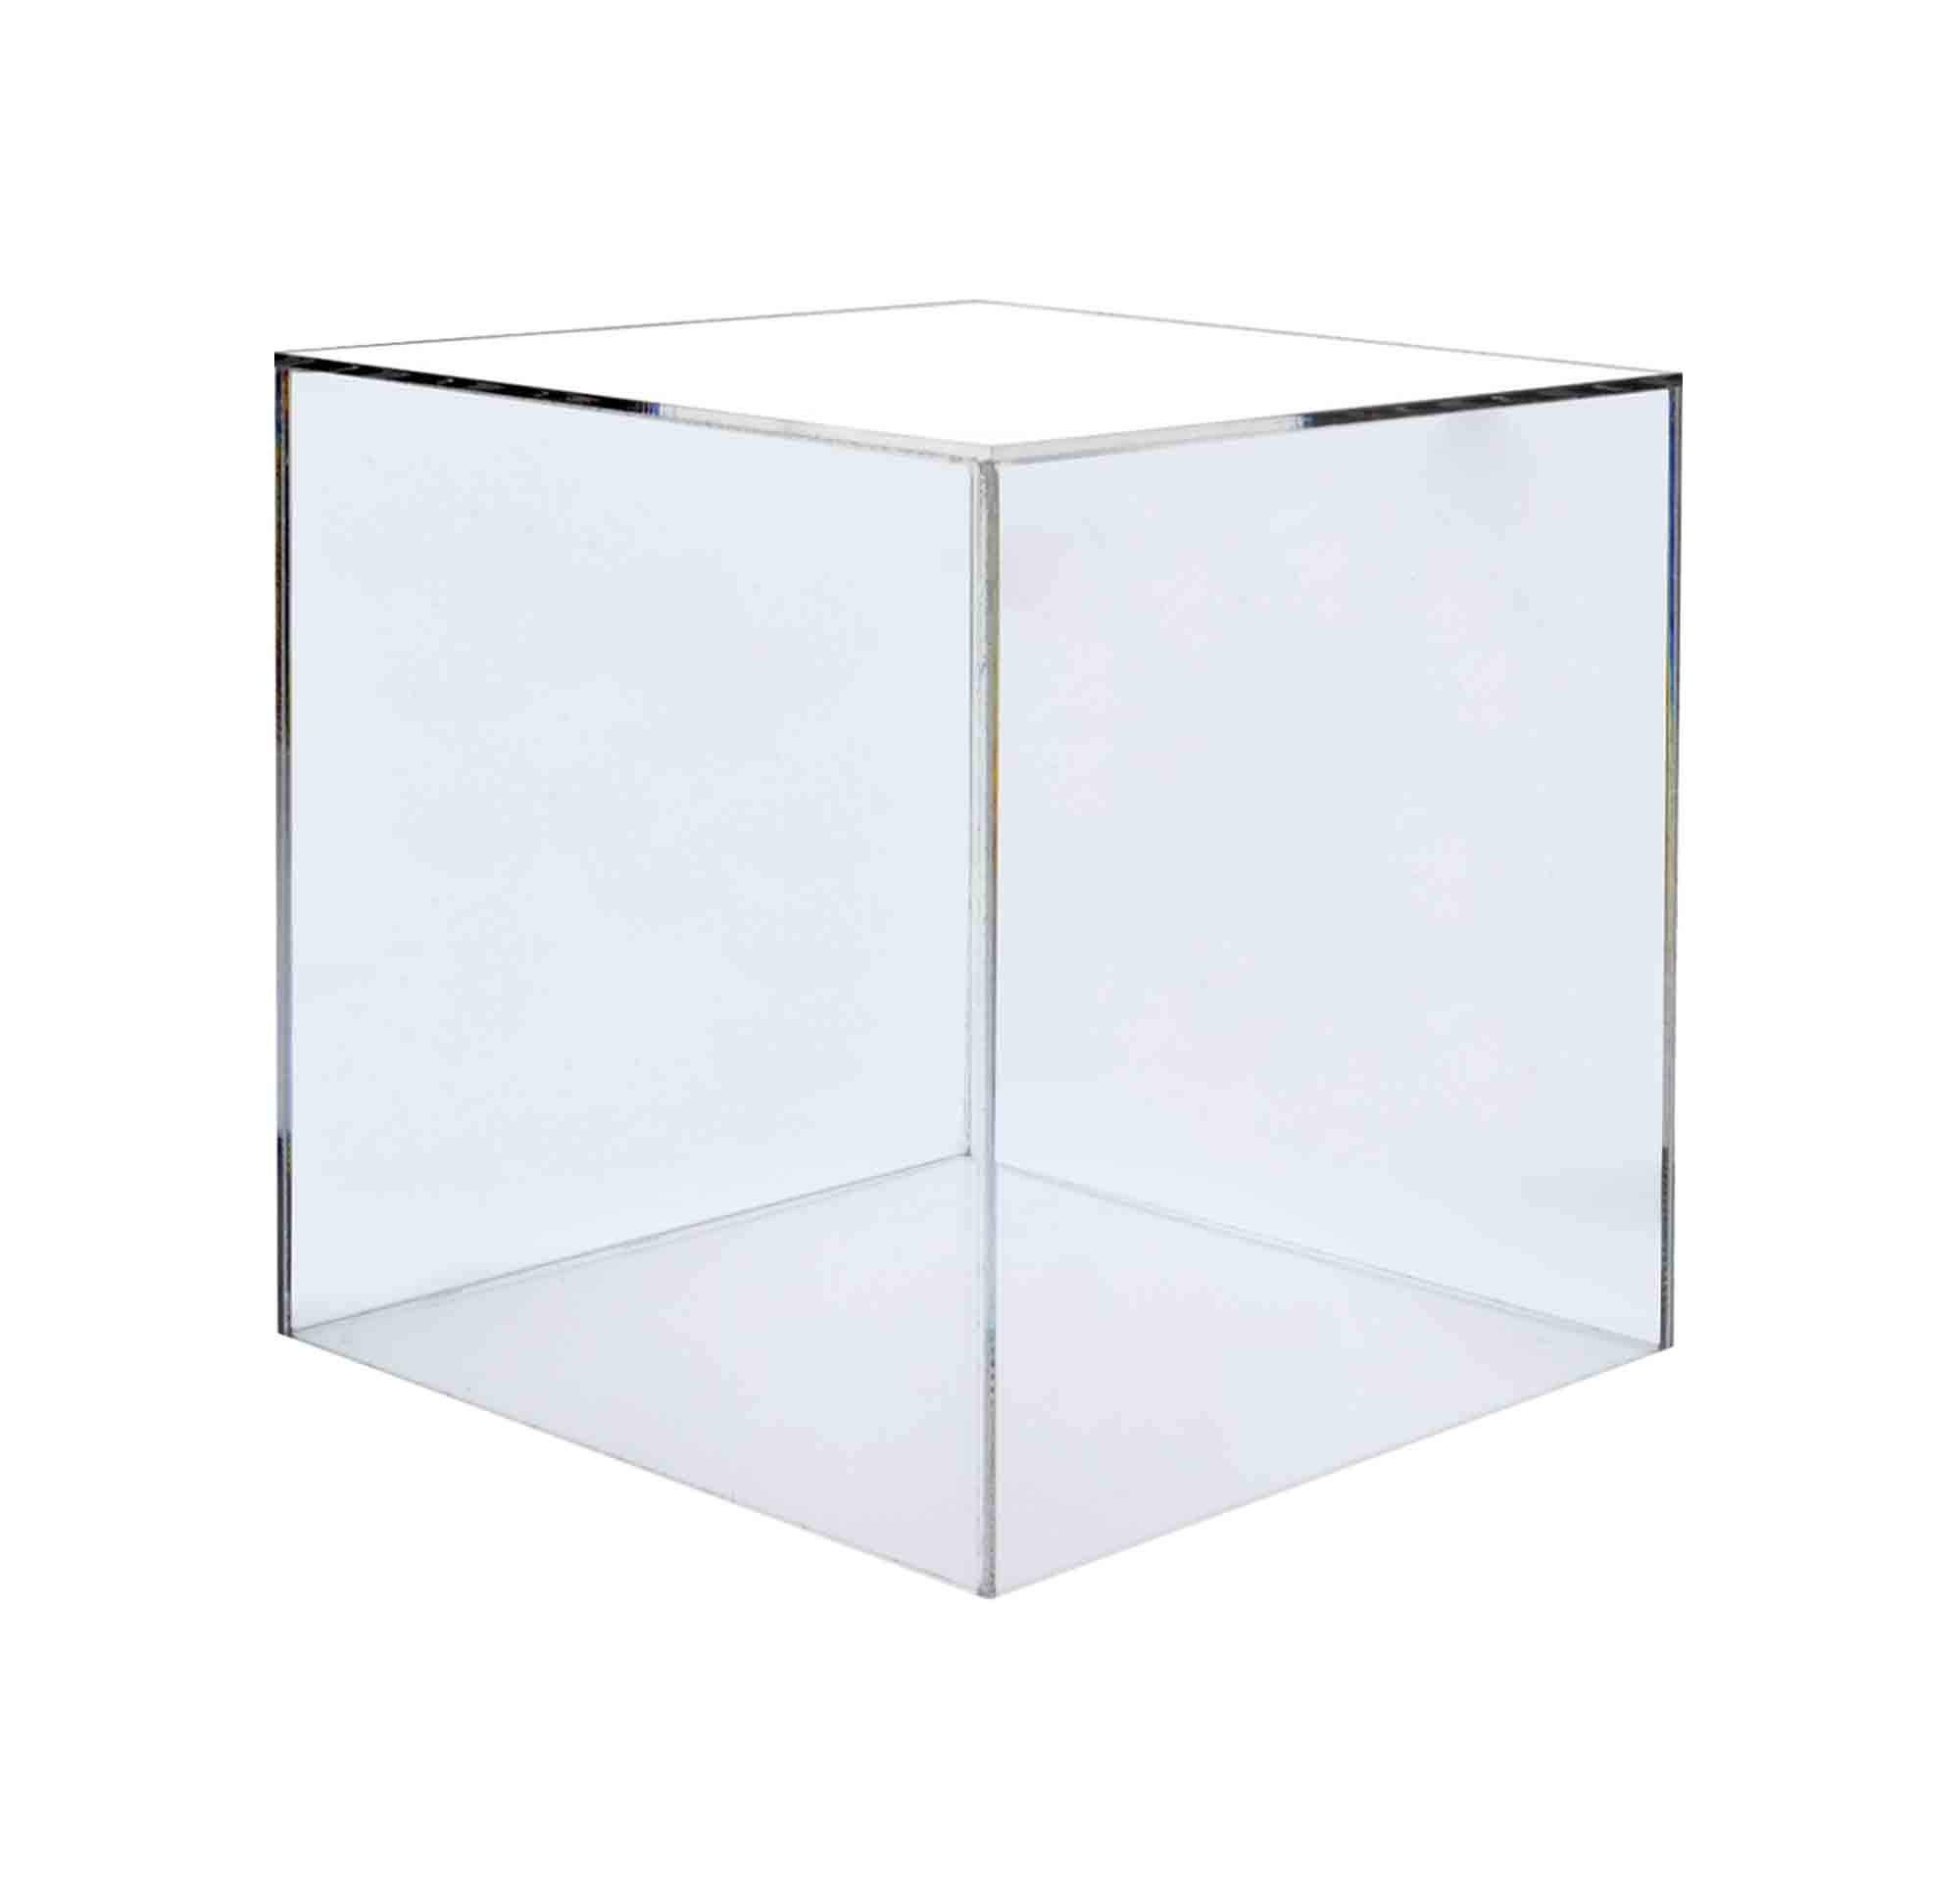 Marketing Holders Display Box Art Sculpture Pedestal Collectible Cube Cover Trophy Trinket Acrylic Showcase Stand Expo Event Wedding Reception Decor 5 Sided 16''w x 16''h x 16''d Pack of 2